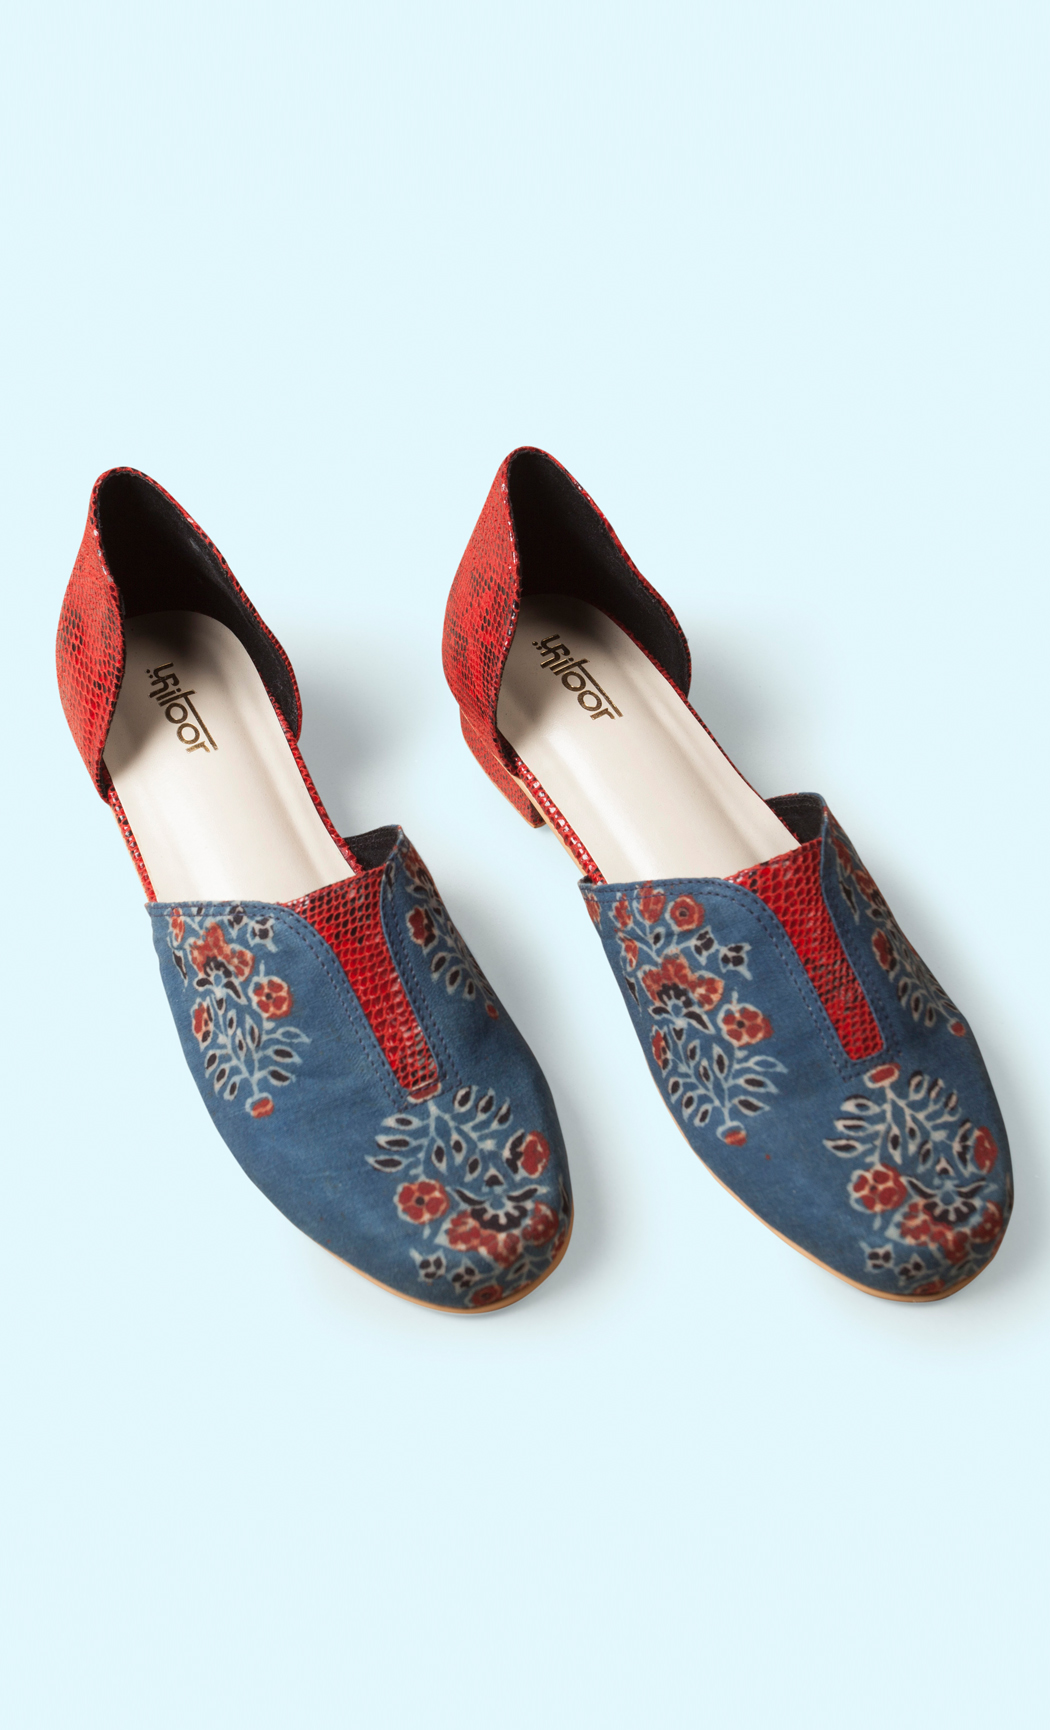 Blue and Red Printed Loafers. Buy Online.